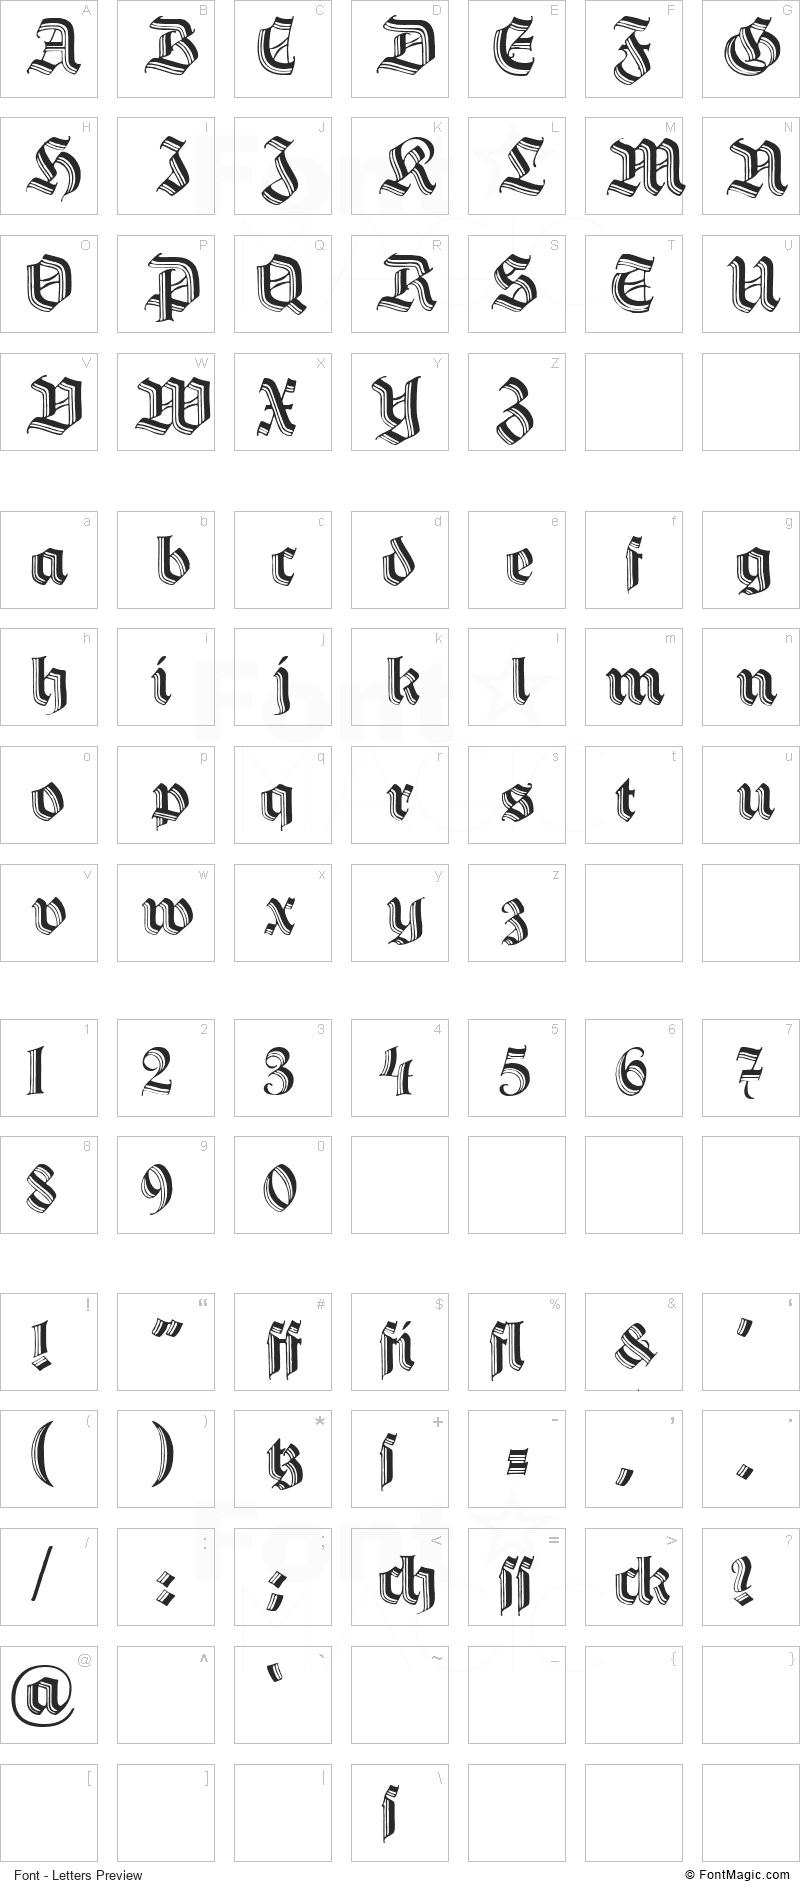 Hermann Gotisch Font - All Latters Preview Chart